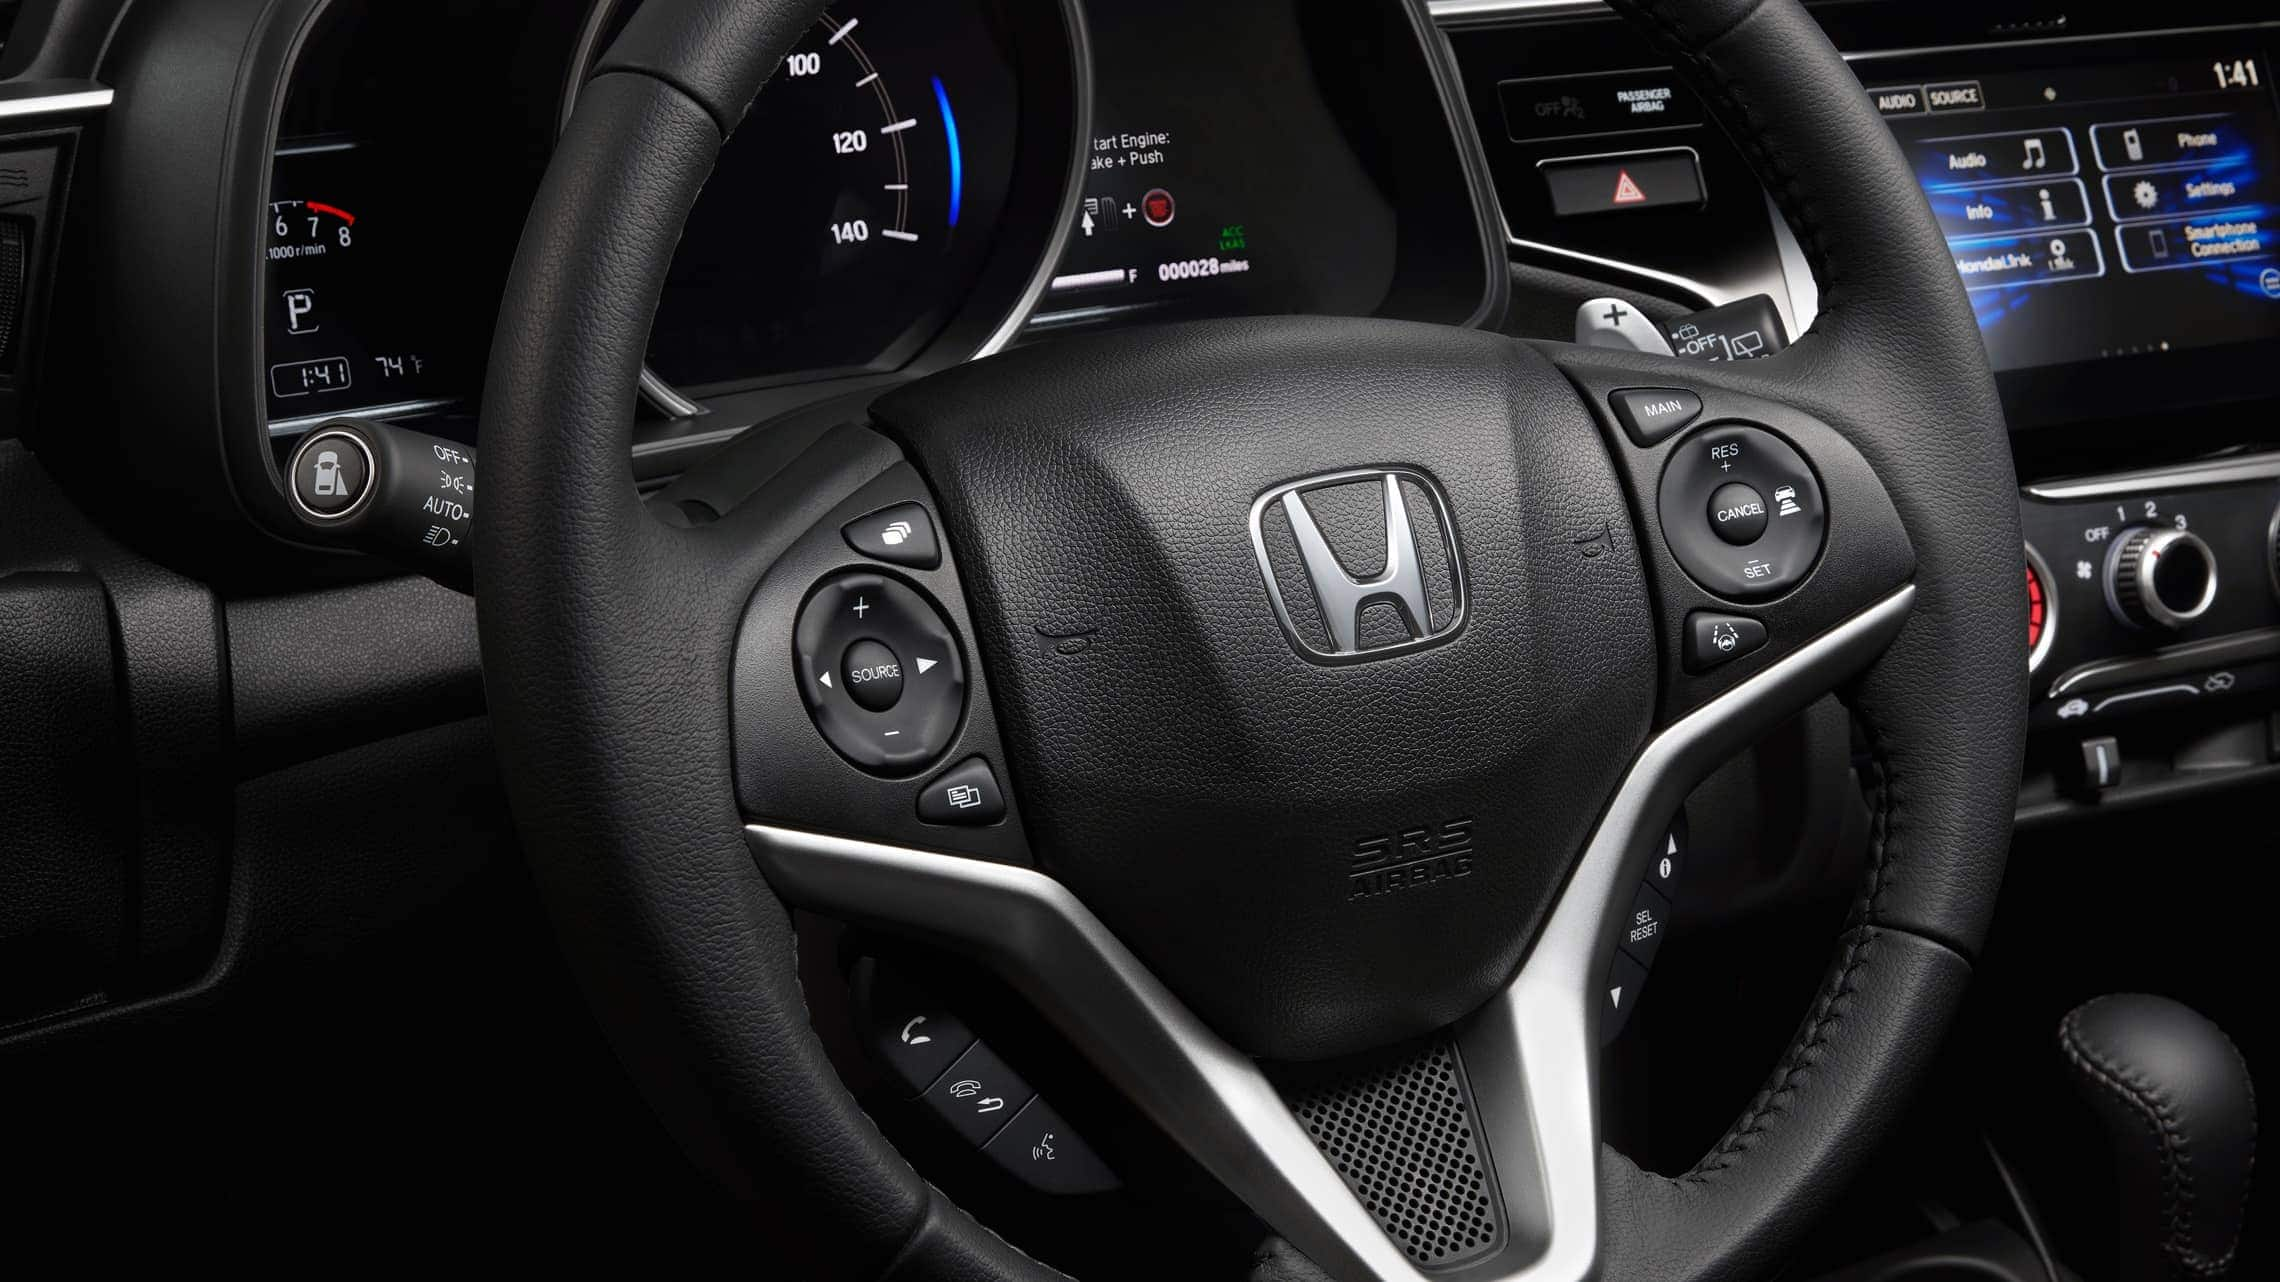 Steering wheel-mounted control detail on 2019 Honda Fit EX-L.